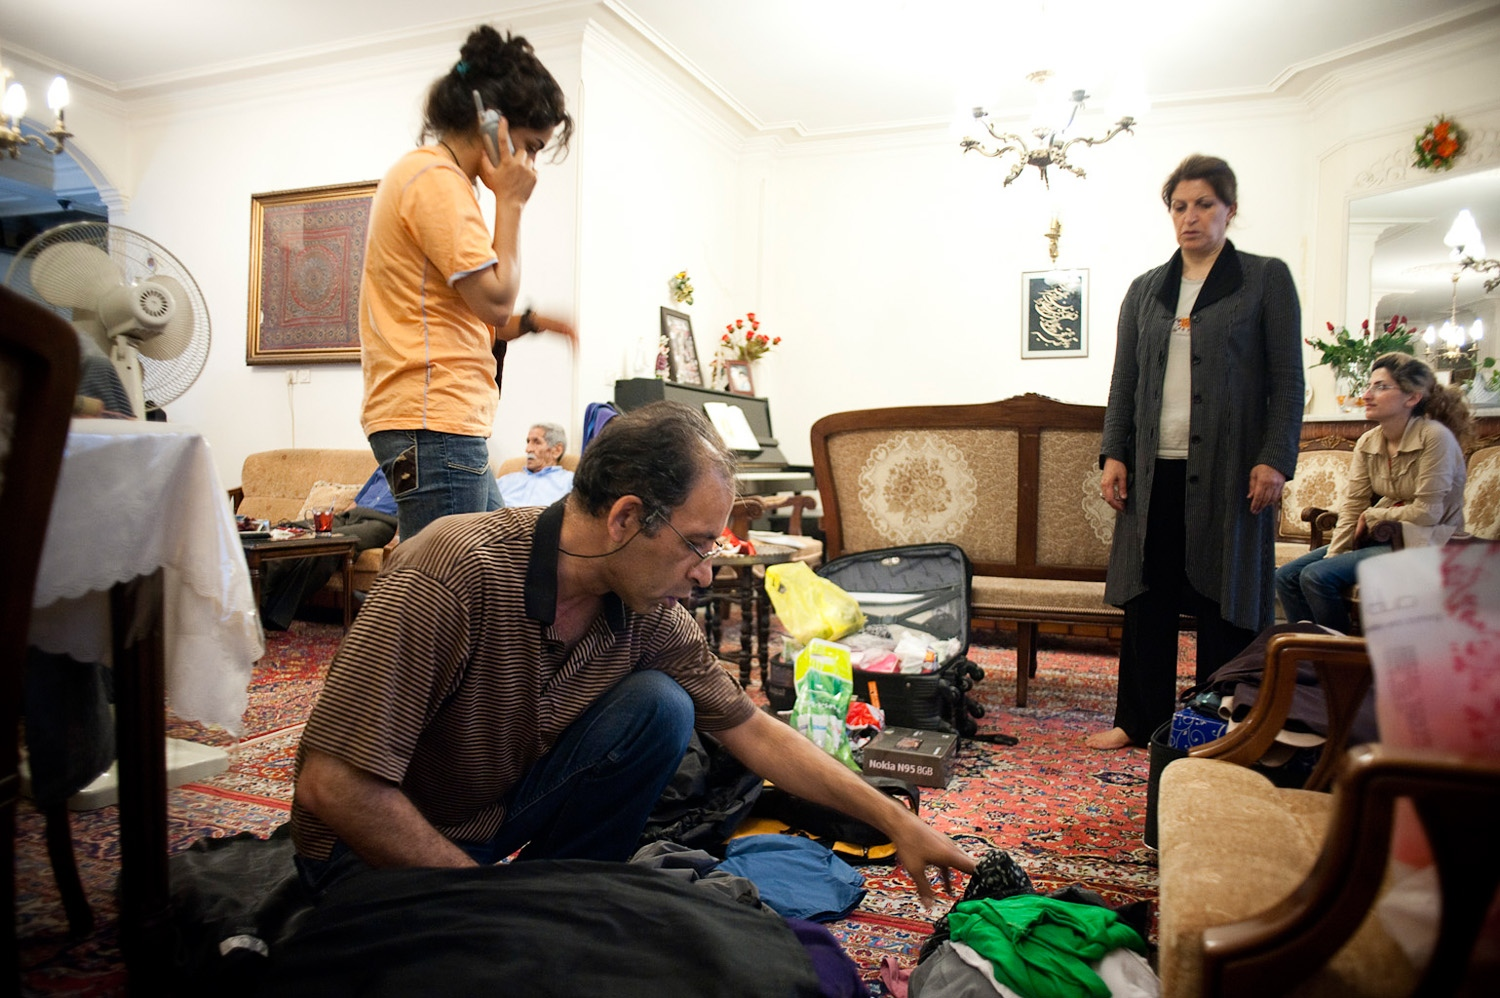 TEHRAN, IRAN - 23/06/10 – Parastou and her parents do last minute preparation and packing at home on the night of her departure to Australia, as close relatives visit them to help out or say goodbye.